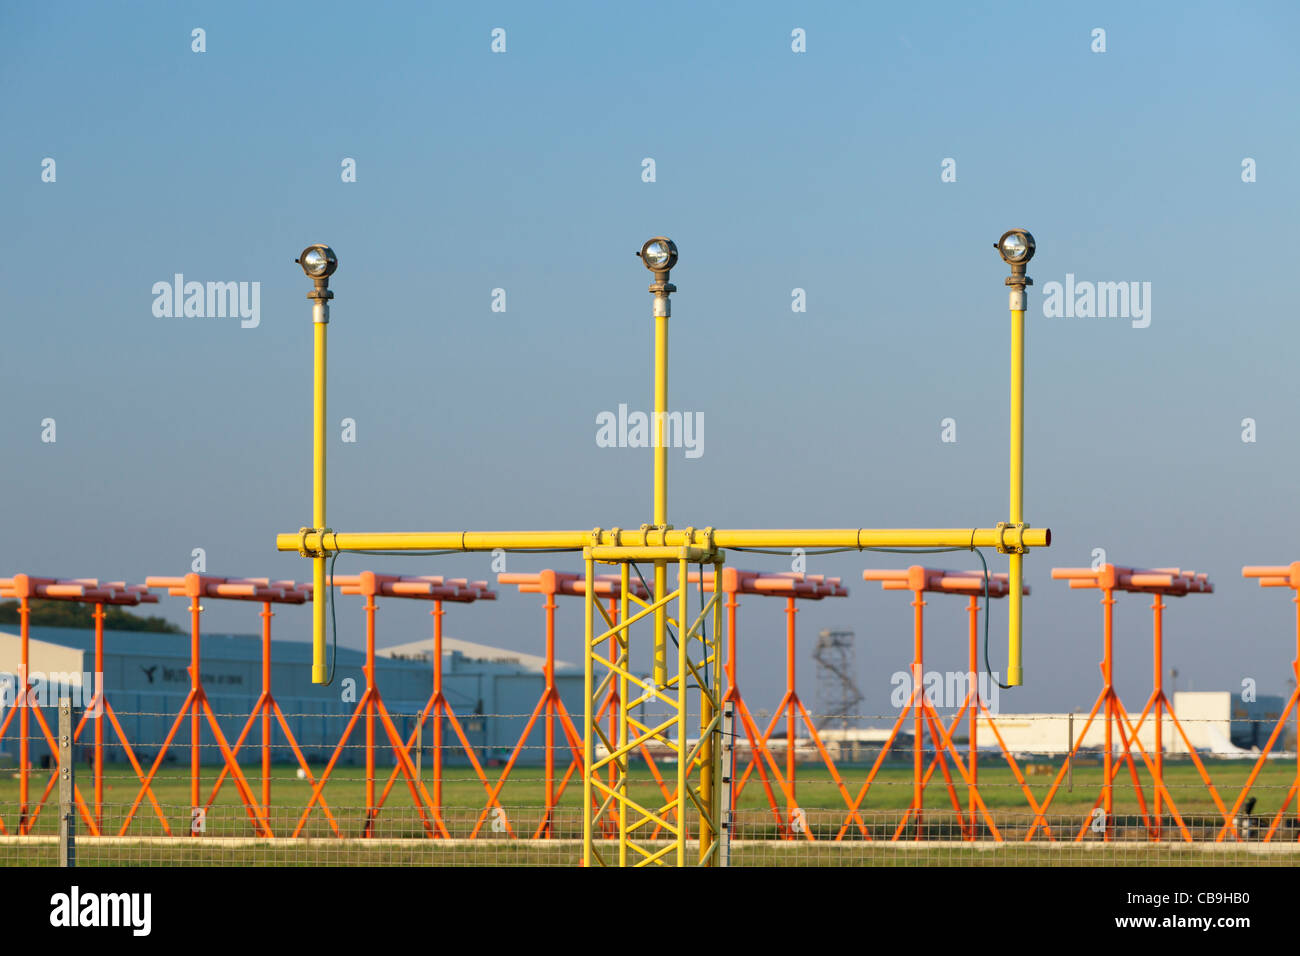 Runway approach lights at a UK airport - Stock Image